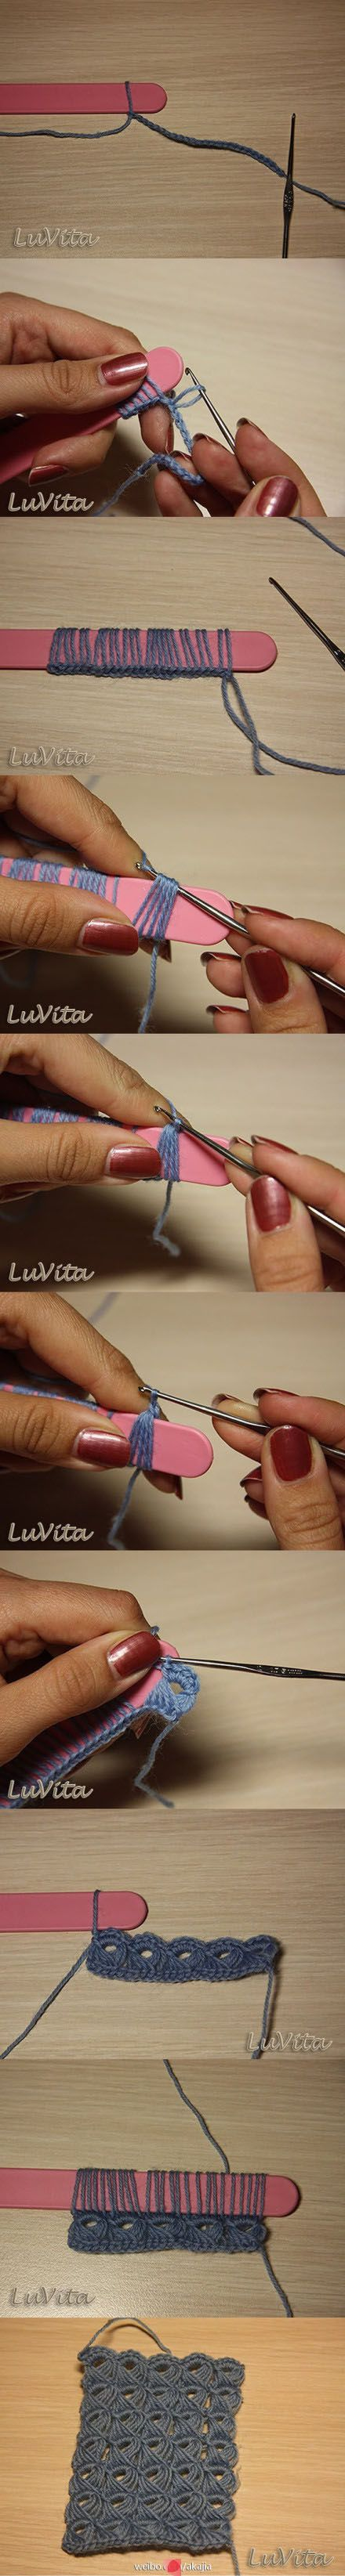 Tutorial for Crochet, Knitting, Crafts.....Keka❤❤❤